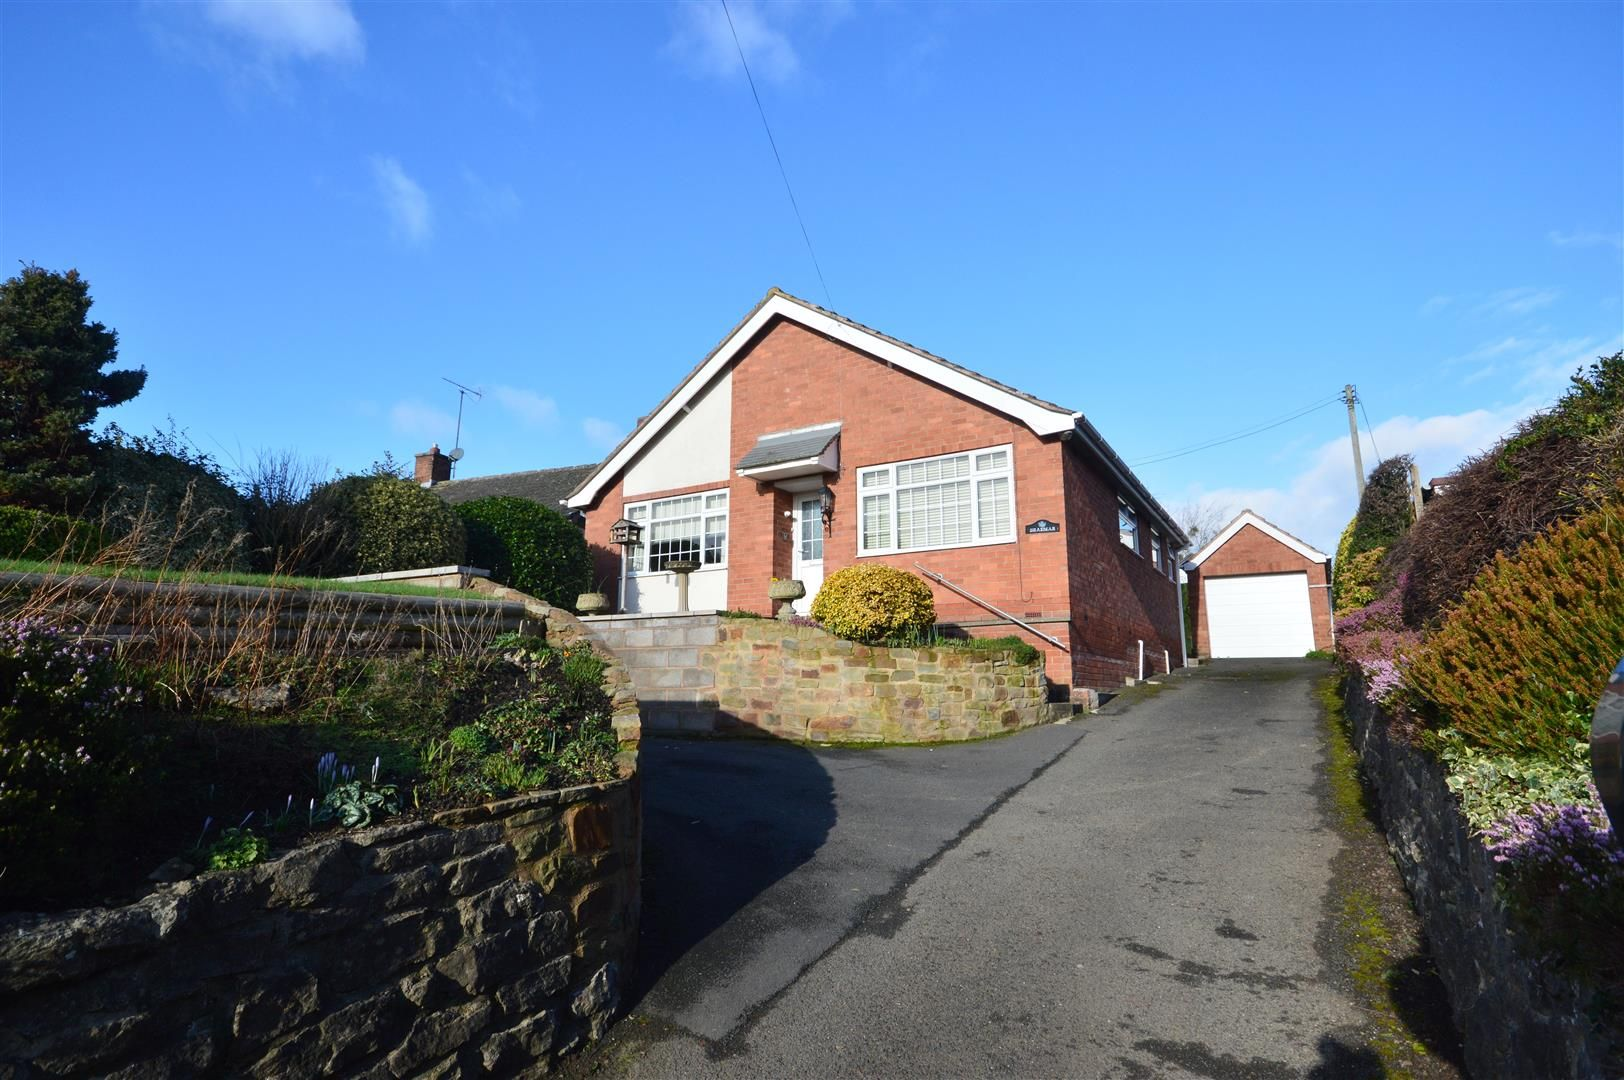 2 bed detached bungalow for sale in Leominster, HR6